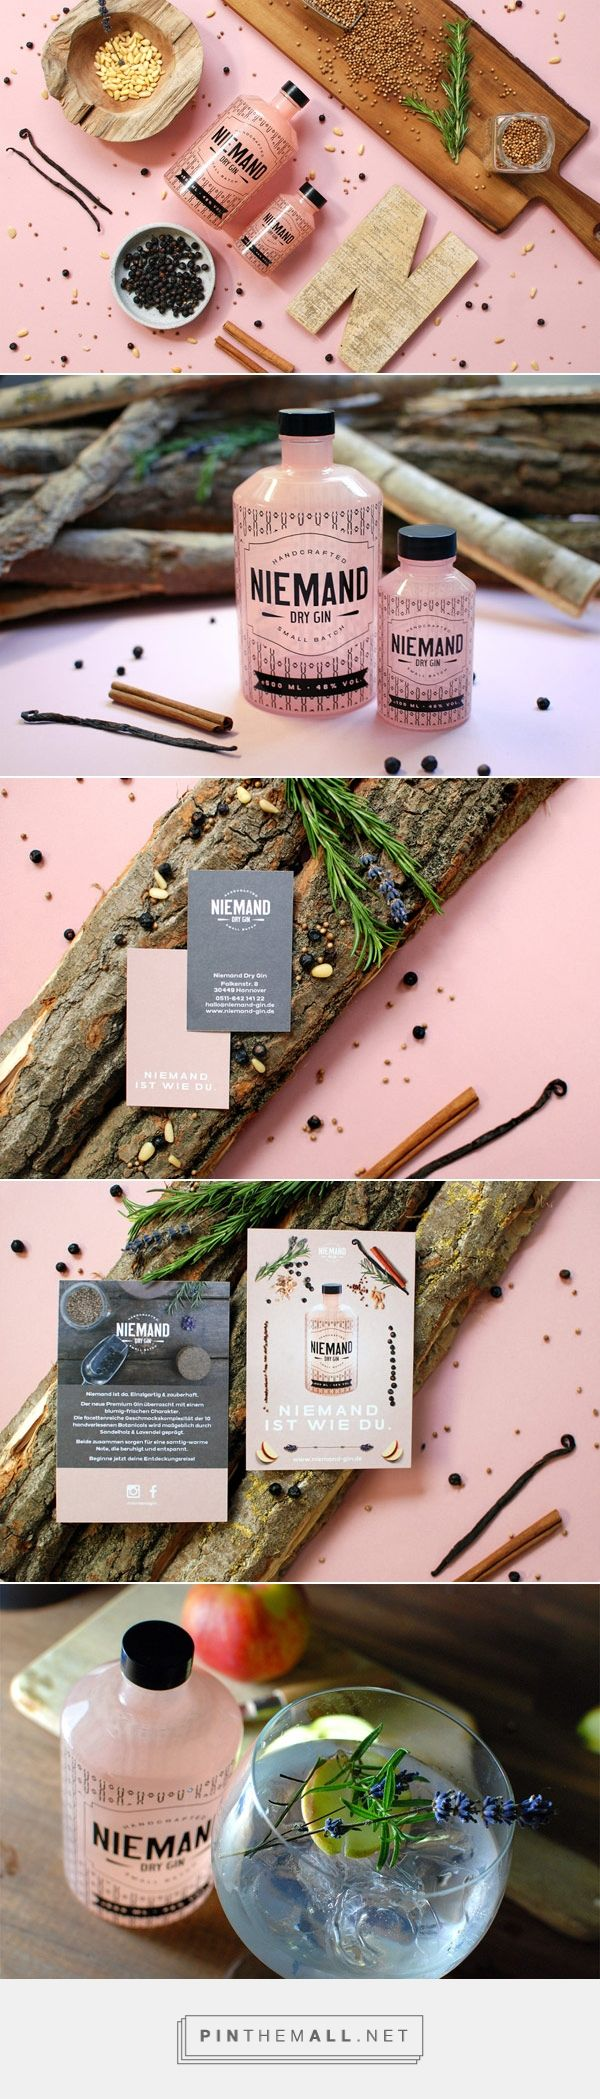 Niemand Dry Gin – Corporate Identity by Qoop via wenandthecolor curated by Packaging Diva PD. Hannover, Qoop was commissioned for the overall brand development including corporate design and identity, packaging, photography, and web design for Niemand Dry Gin.